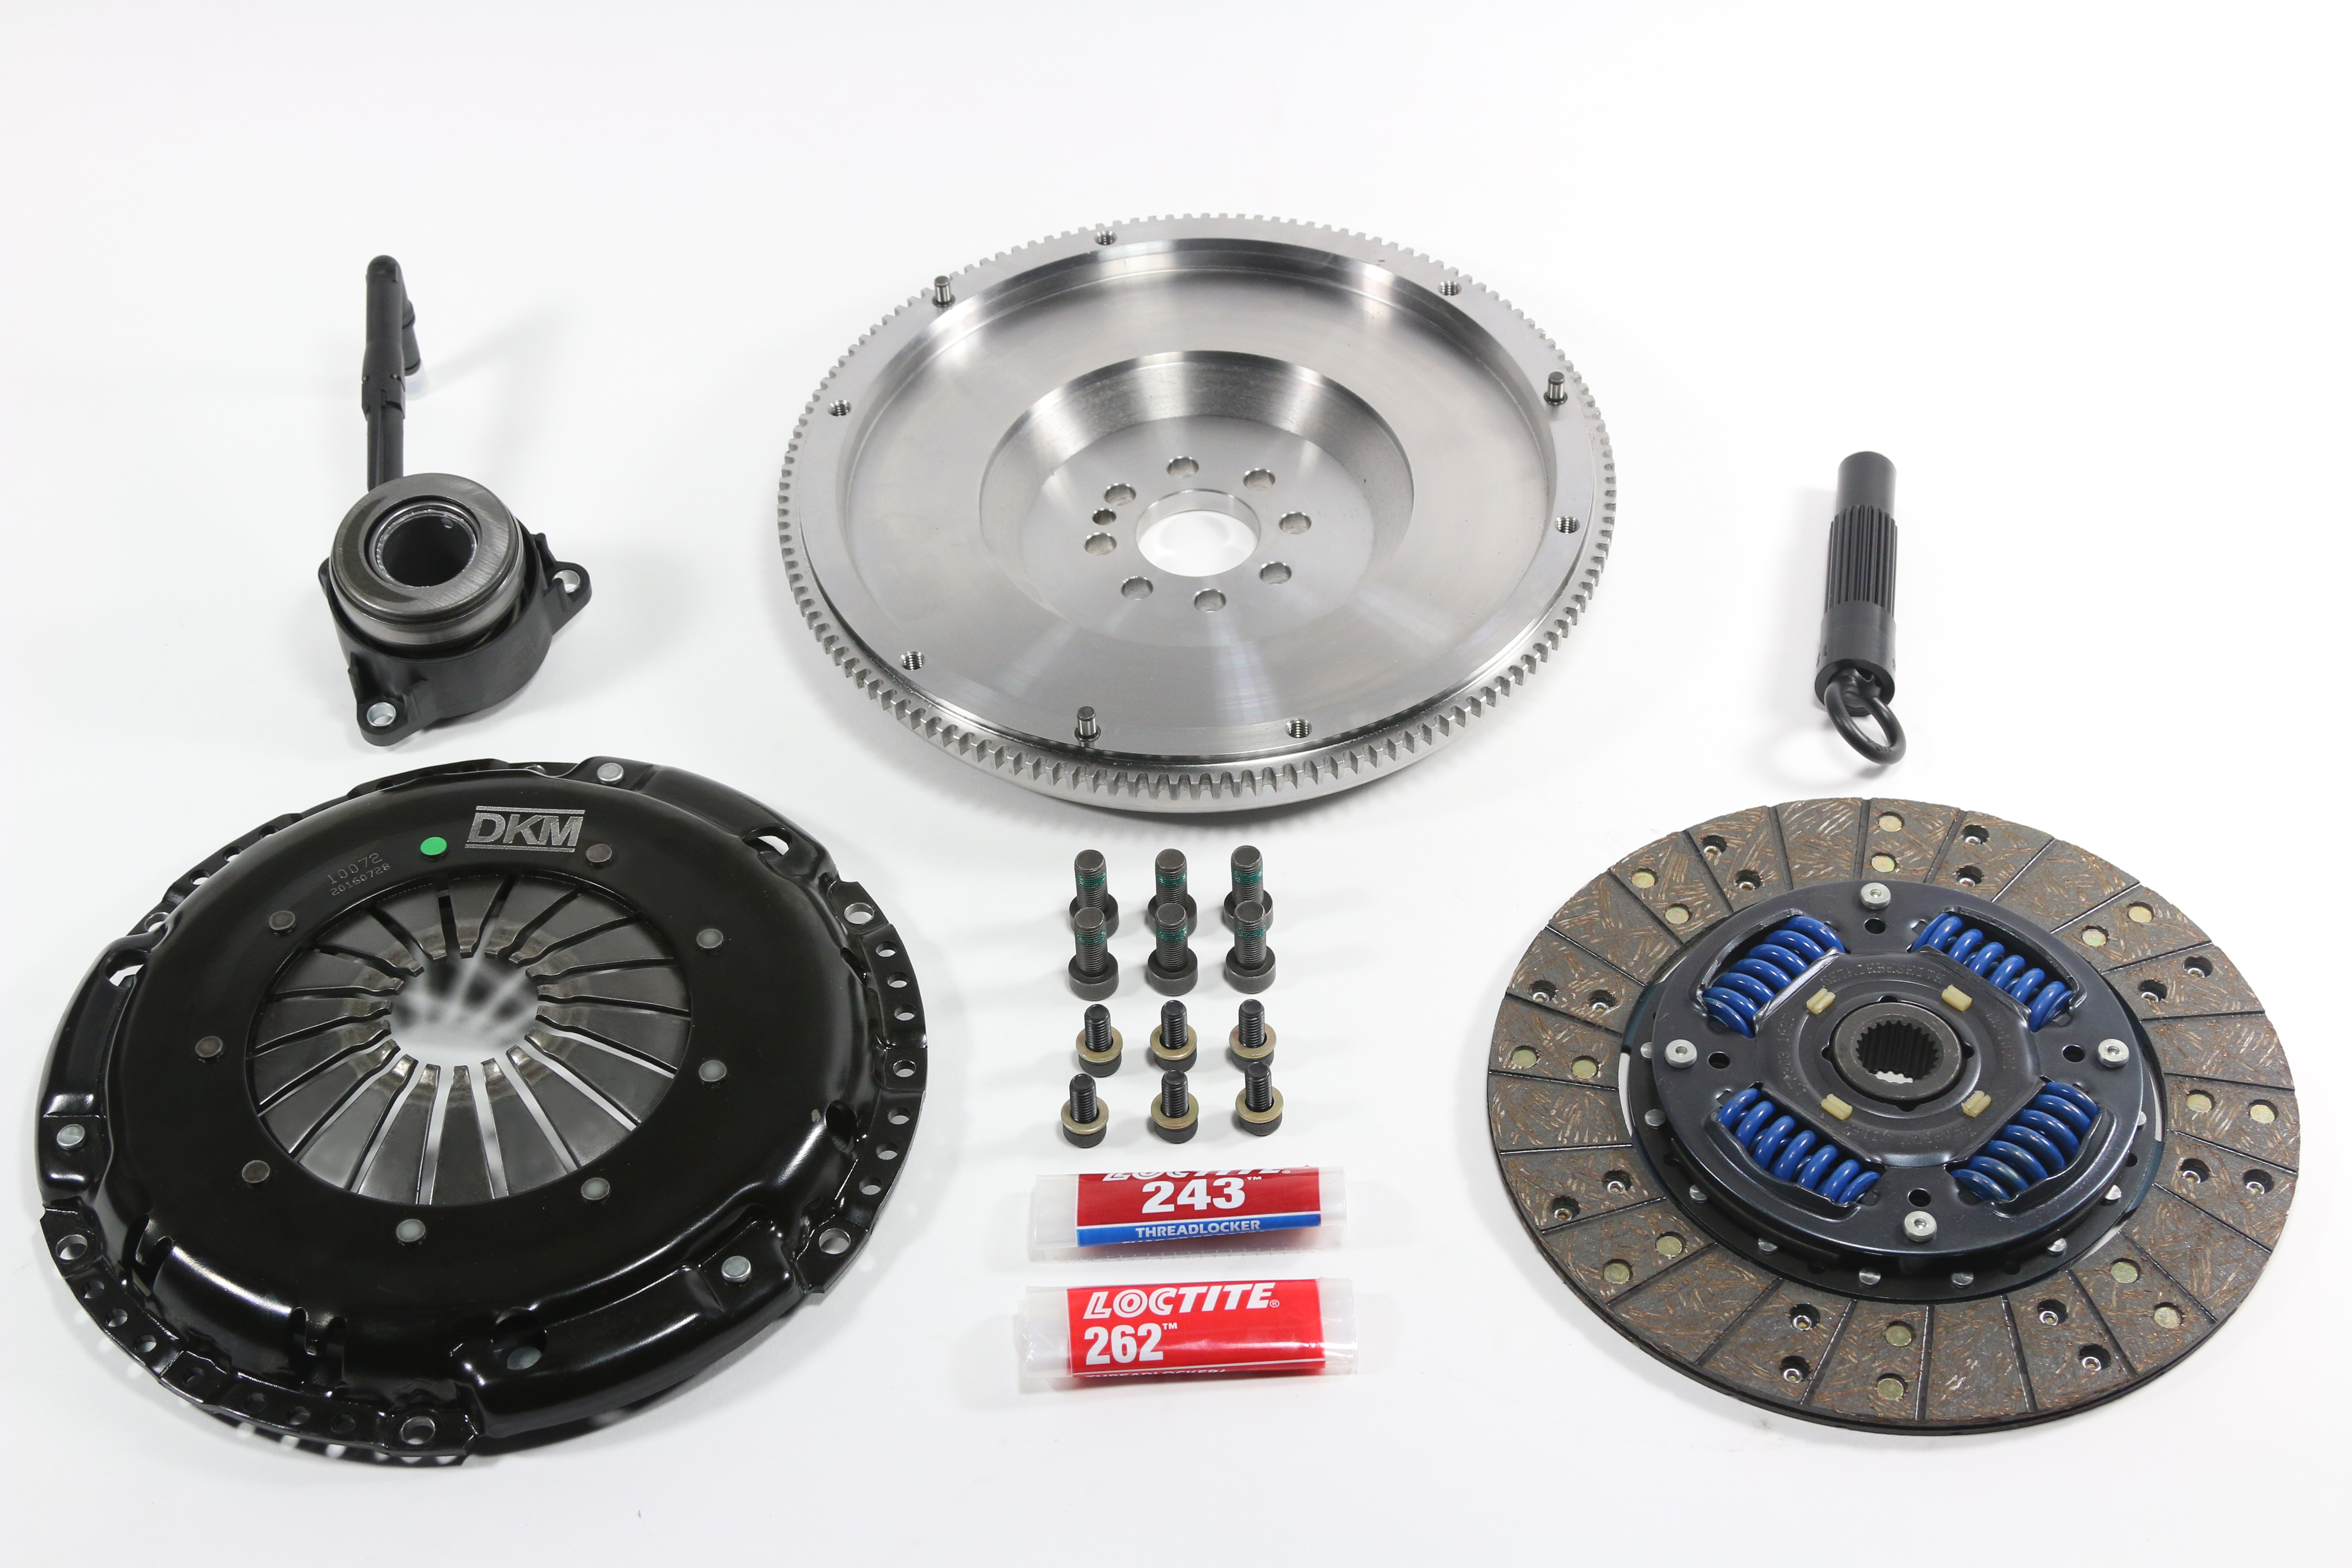 Dkm Bmw Z4 Roadster Chassis E85 Engine M54 Mb Clutch Kit